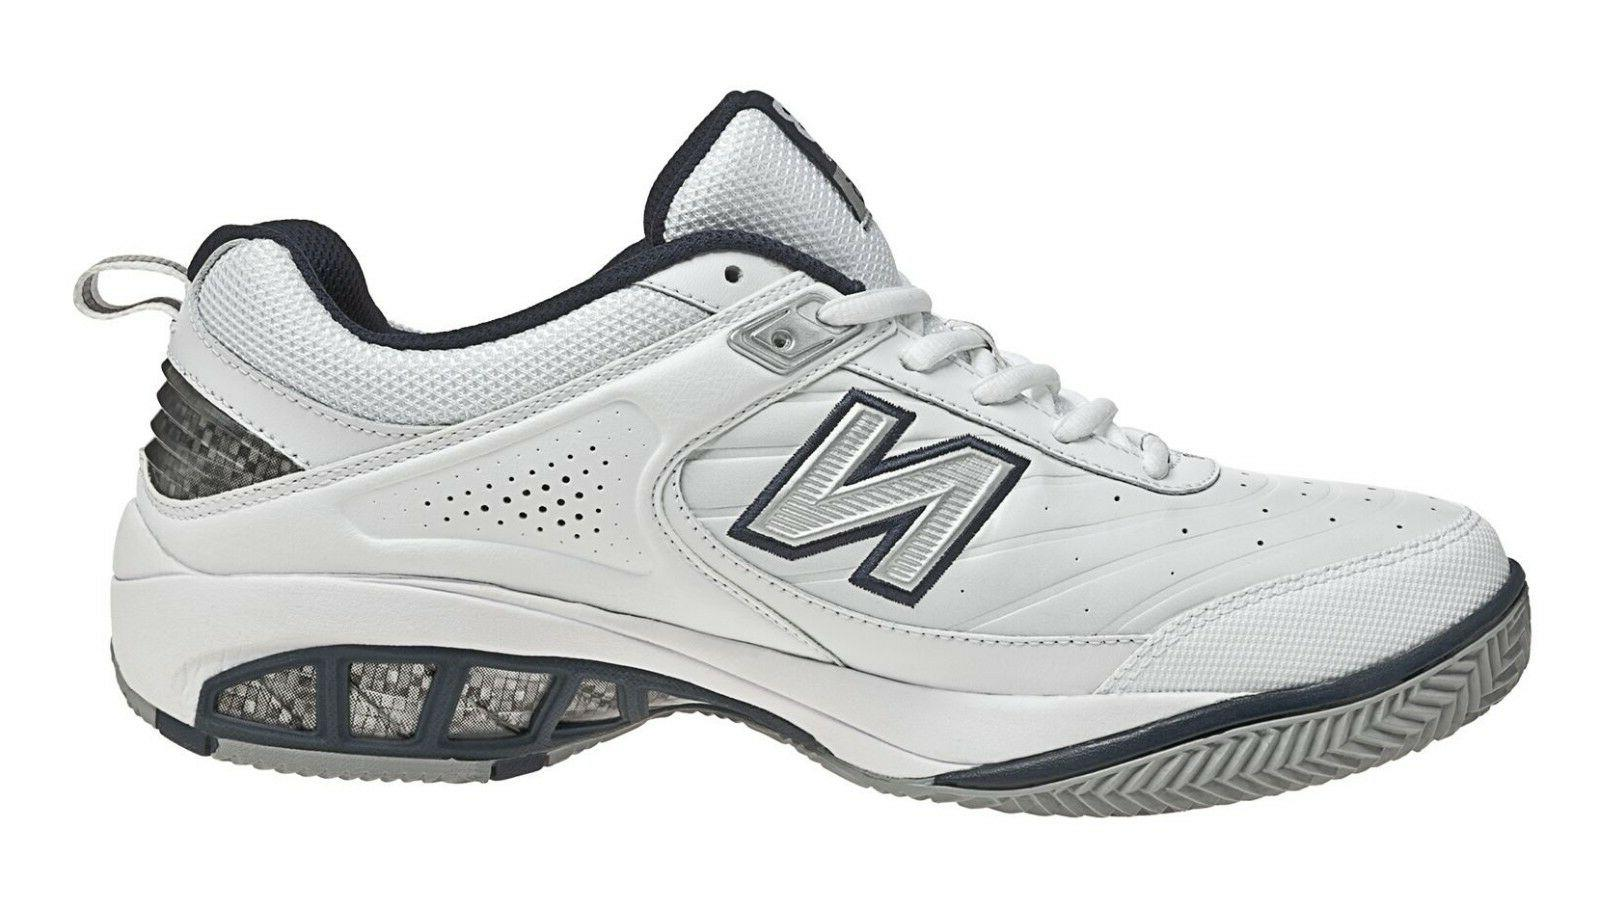 New Core Tennis Shoes